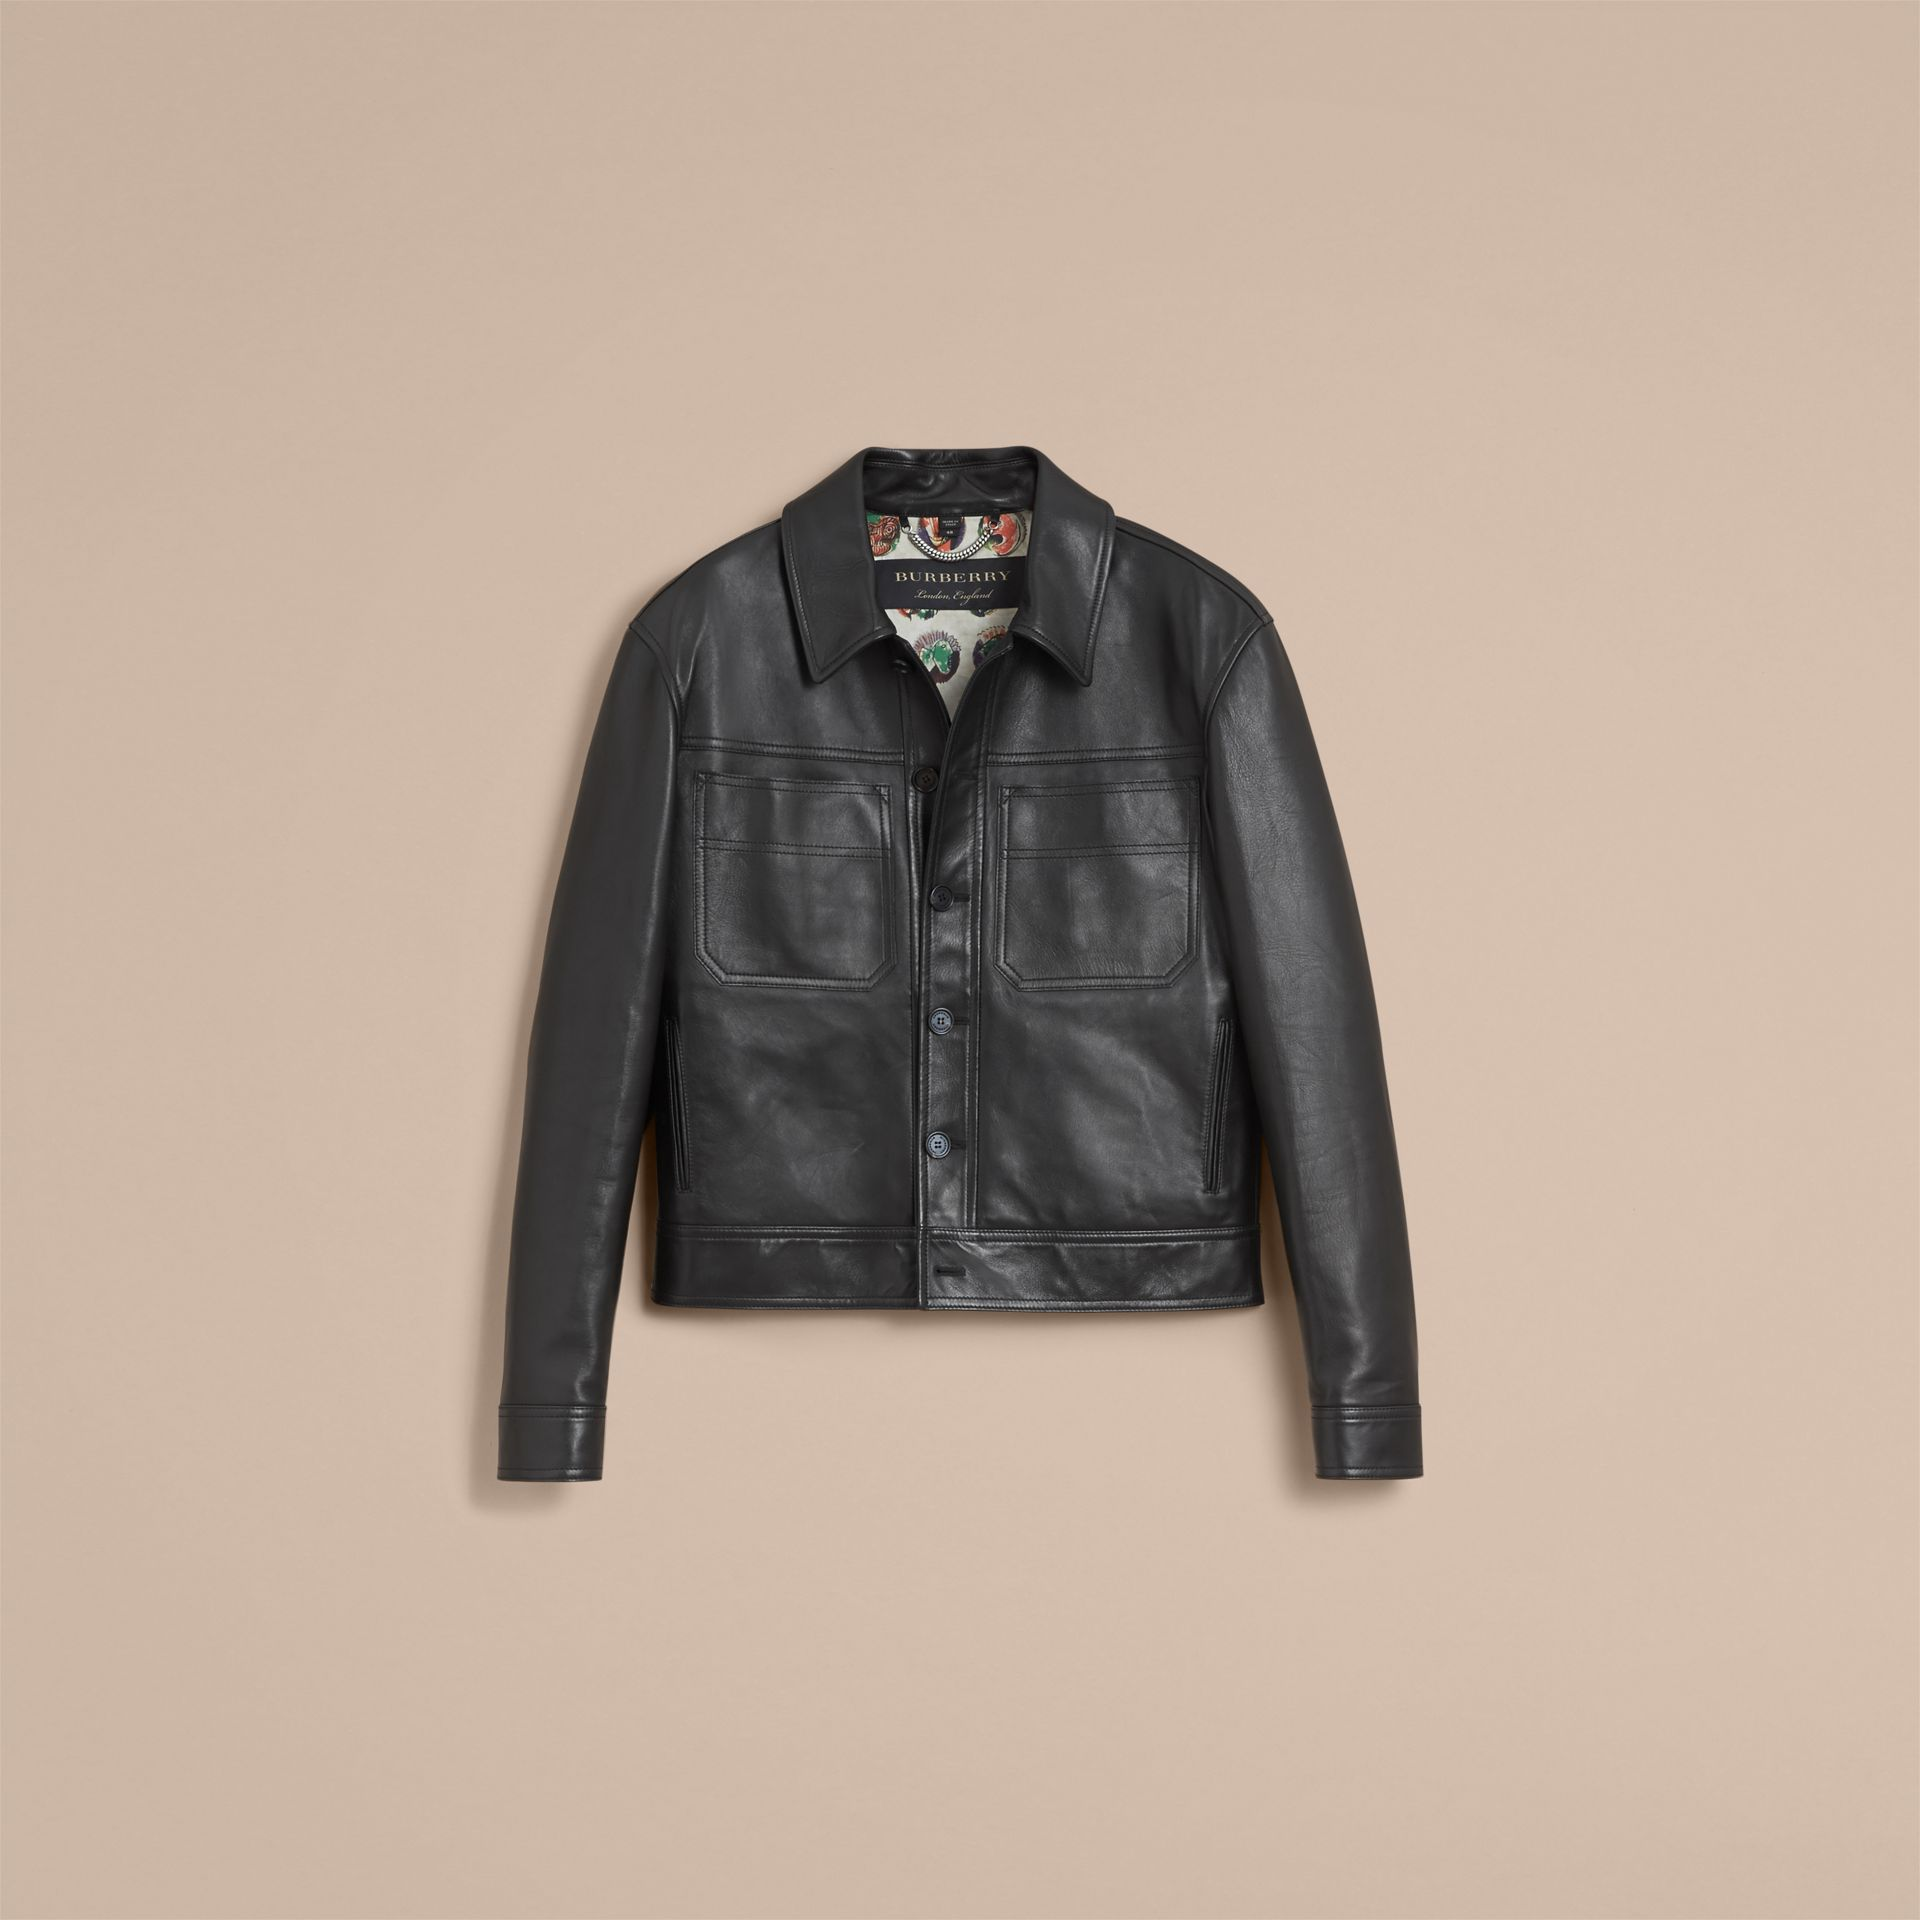 Leather Trucker Jacket with Pallas Heads Print Lining in Black - Men | Burberry United States - gallery image 3